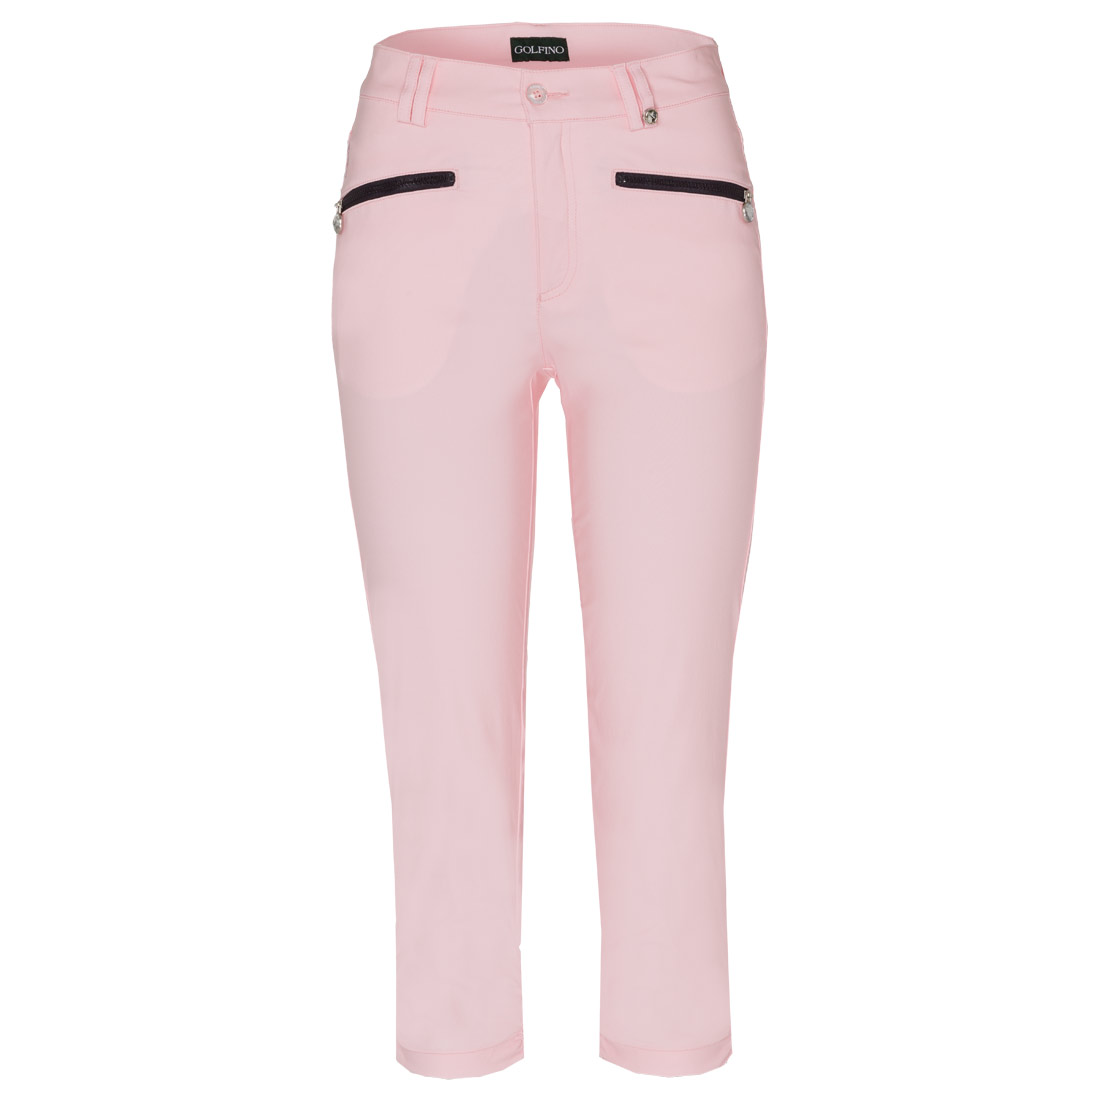 Ladies' techno stretch Capri pants